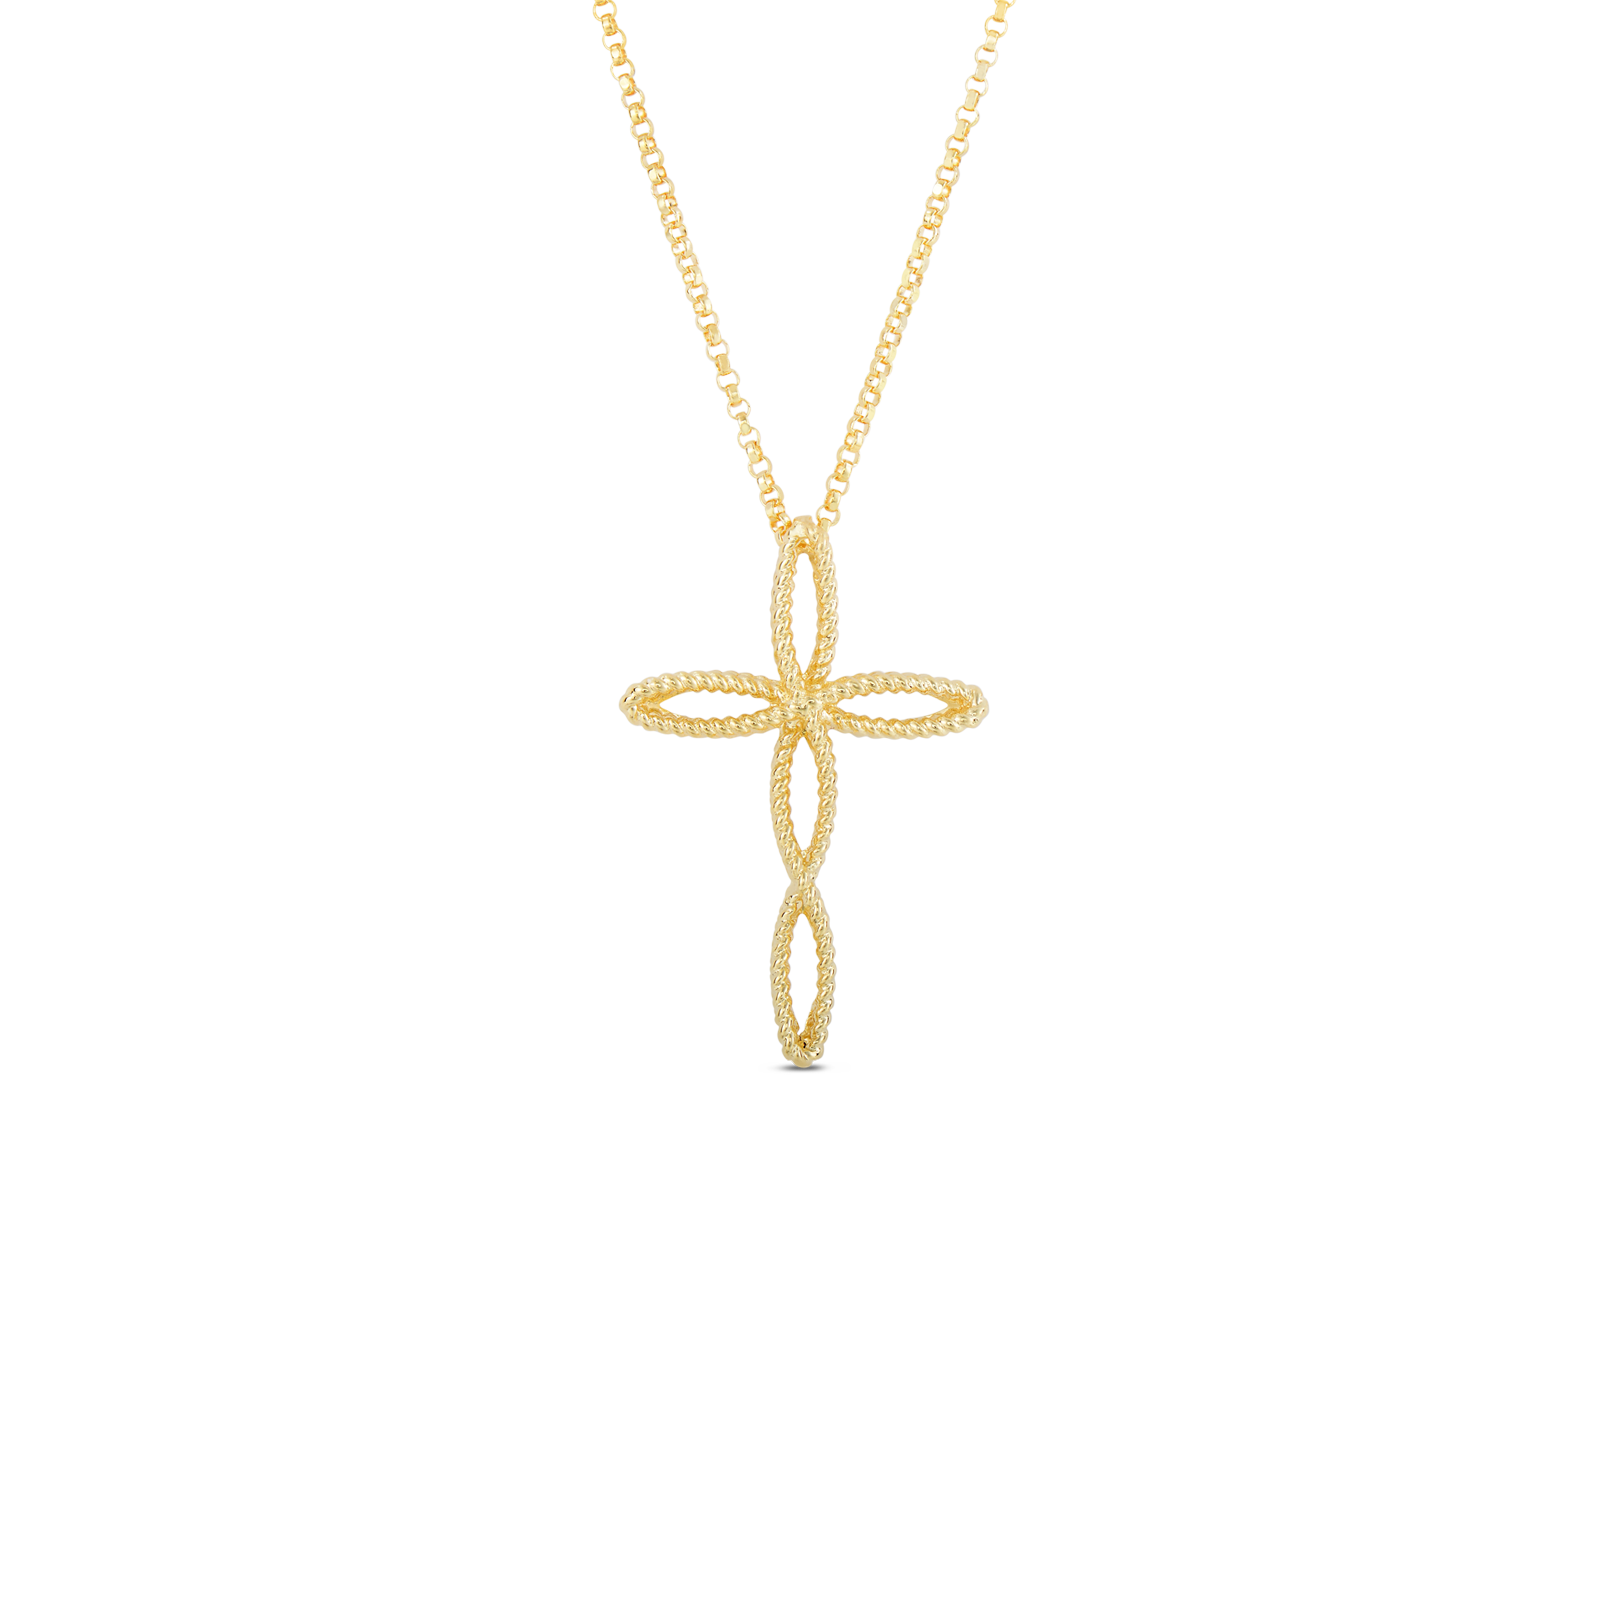 Italian gold cross pendant by roberto coin in new barocco roberto coin barocco 18k yellow gold cross pendant audiocablefo